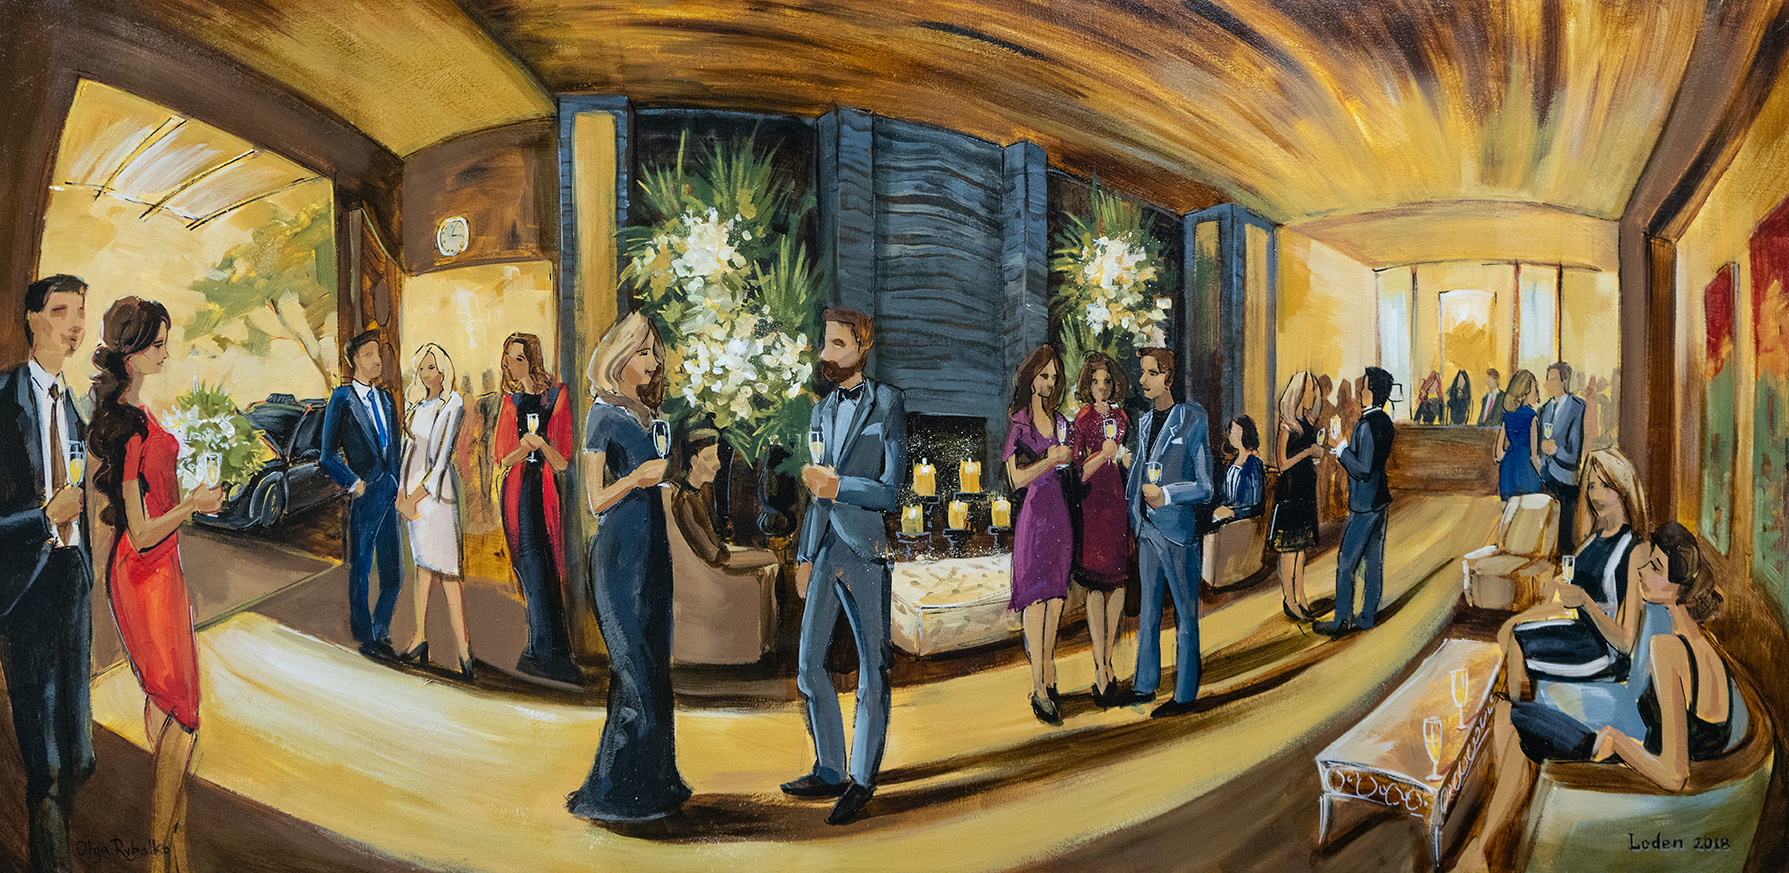 Copy of impressions live art corporate event painting loden hotel 10 year anniversary.jpg